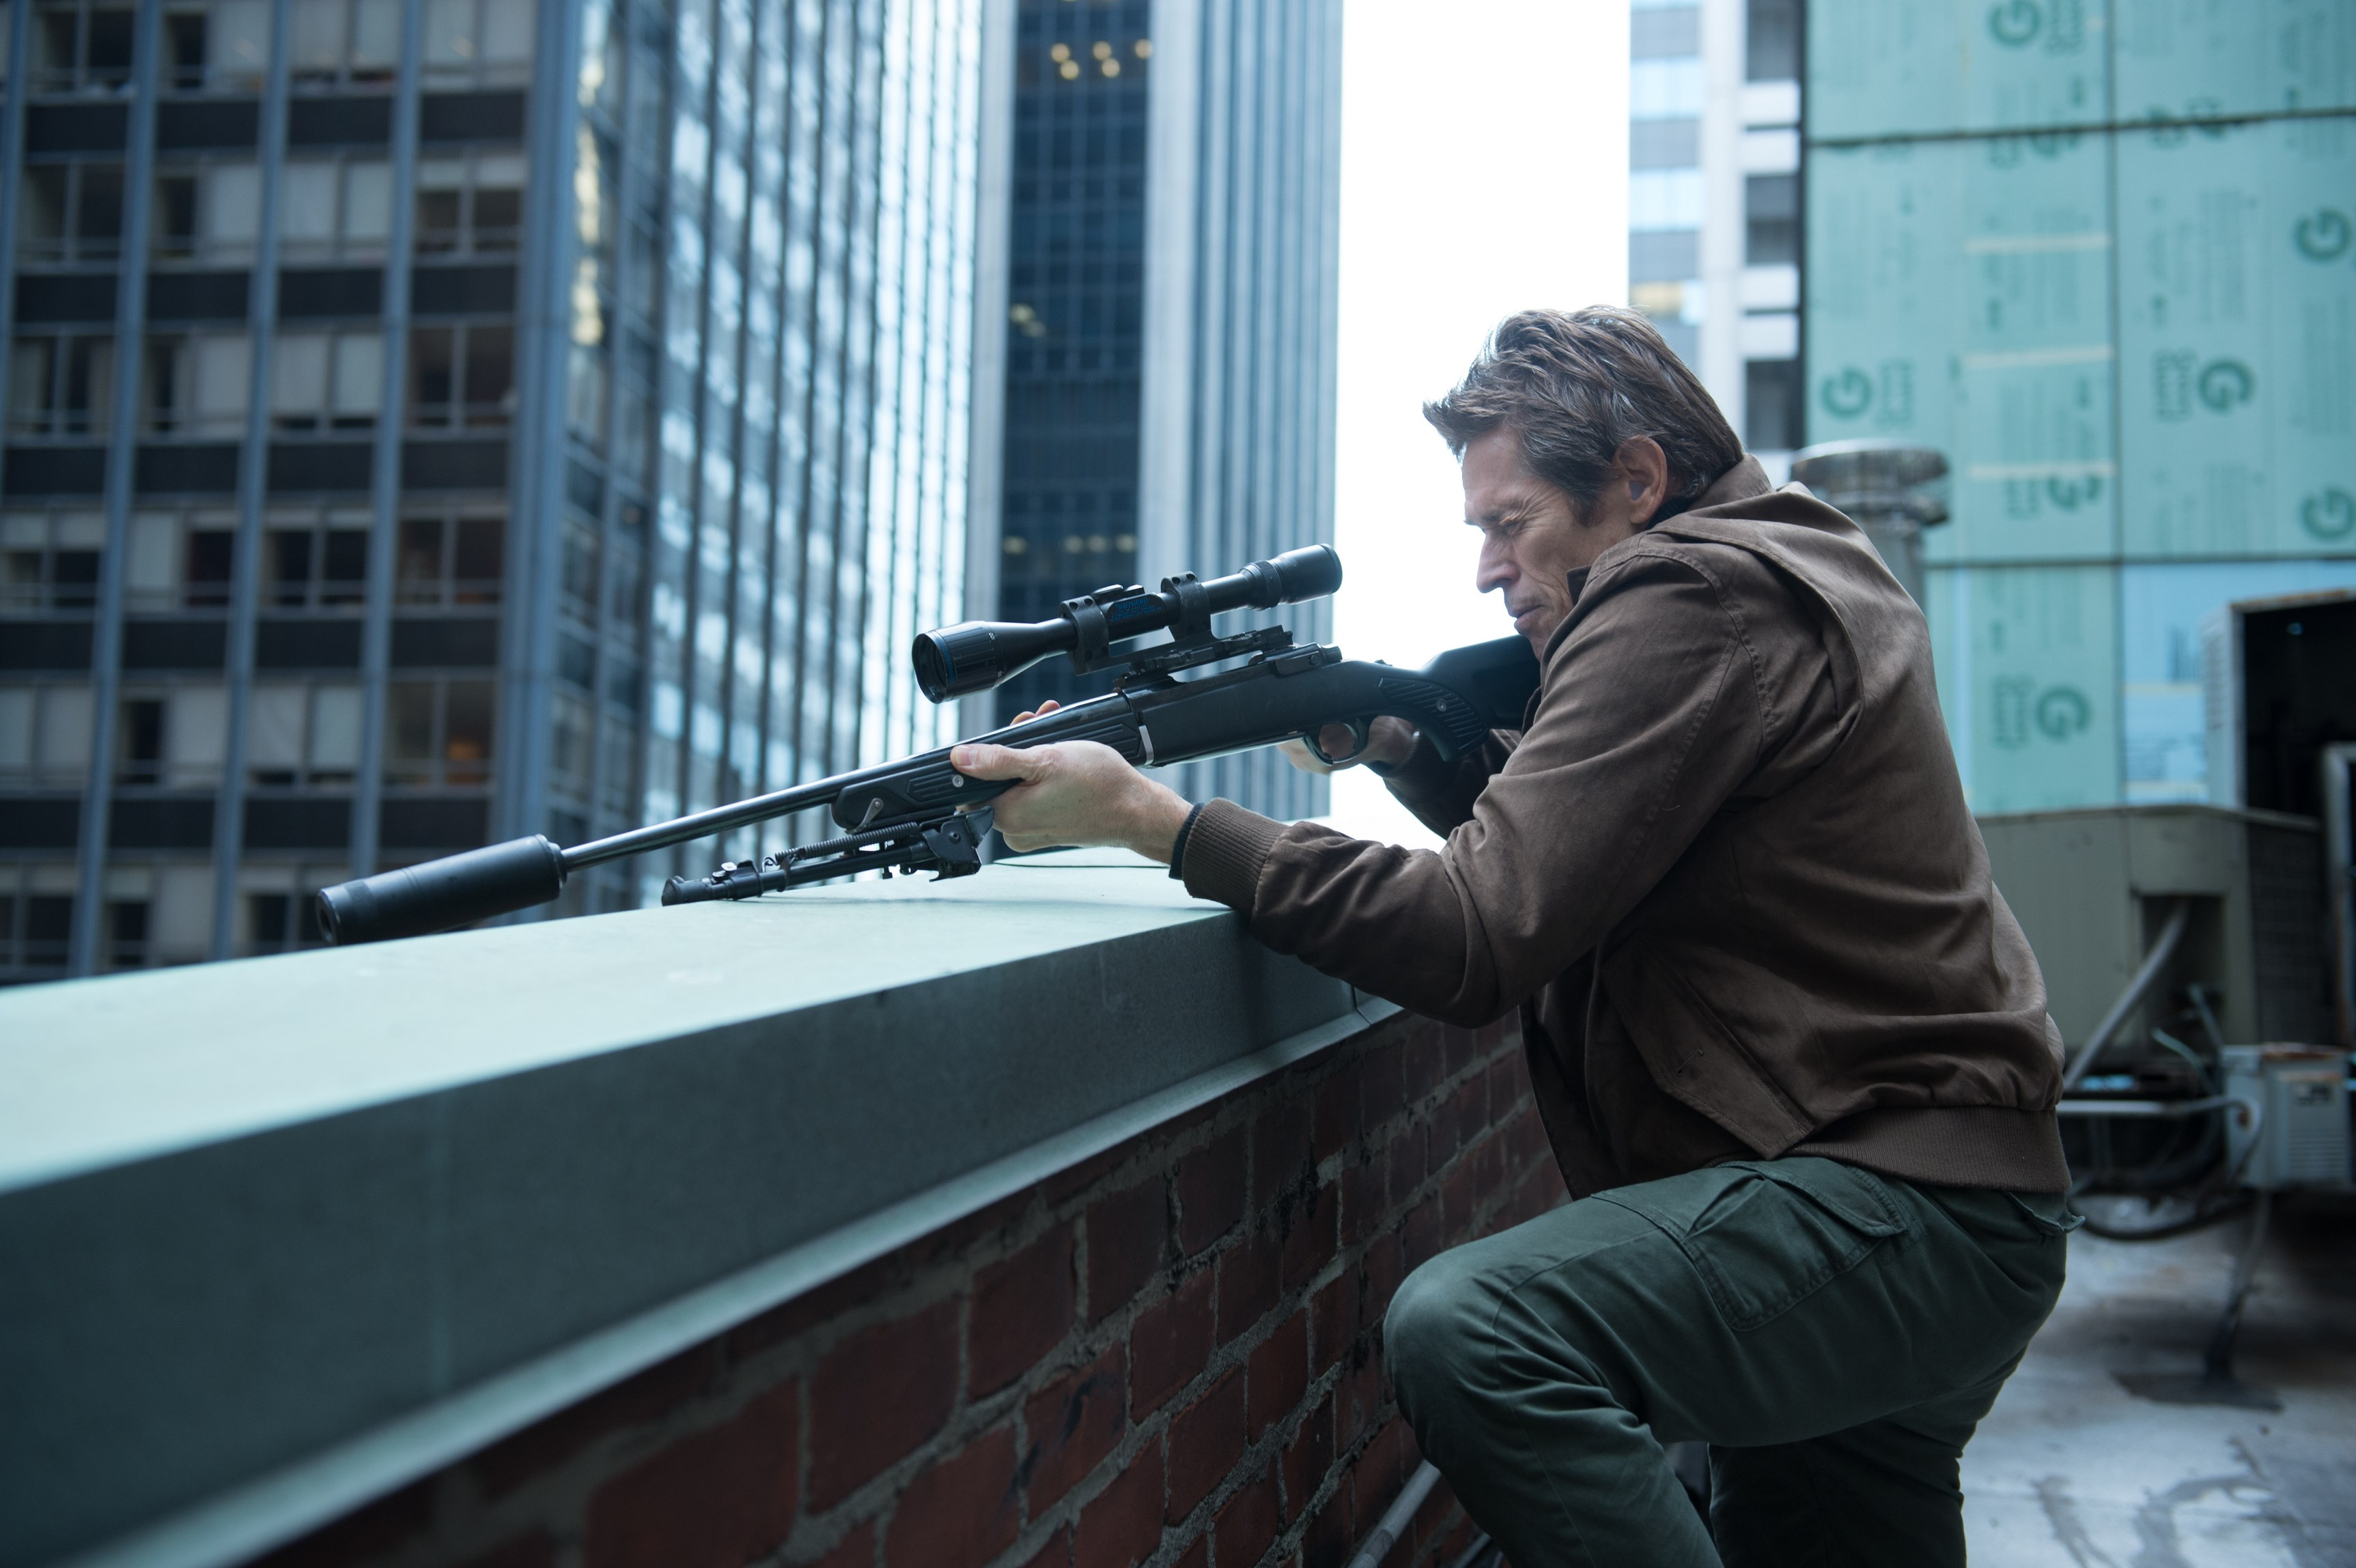 review of movie clip 1 chapter 2 In this new yahoo movies clip from john wick: chapter 2, we're not treated to a blazing action sequence, but one filled with tension all the same keanu reeves and lance reddick shine as wick .